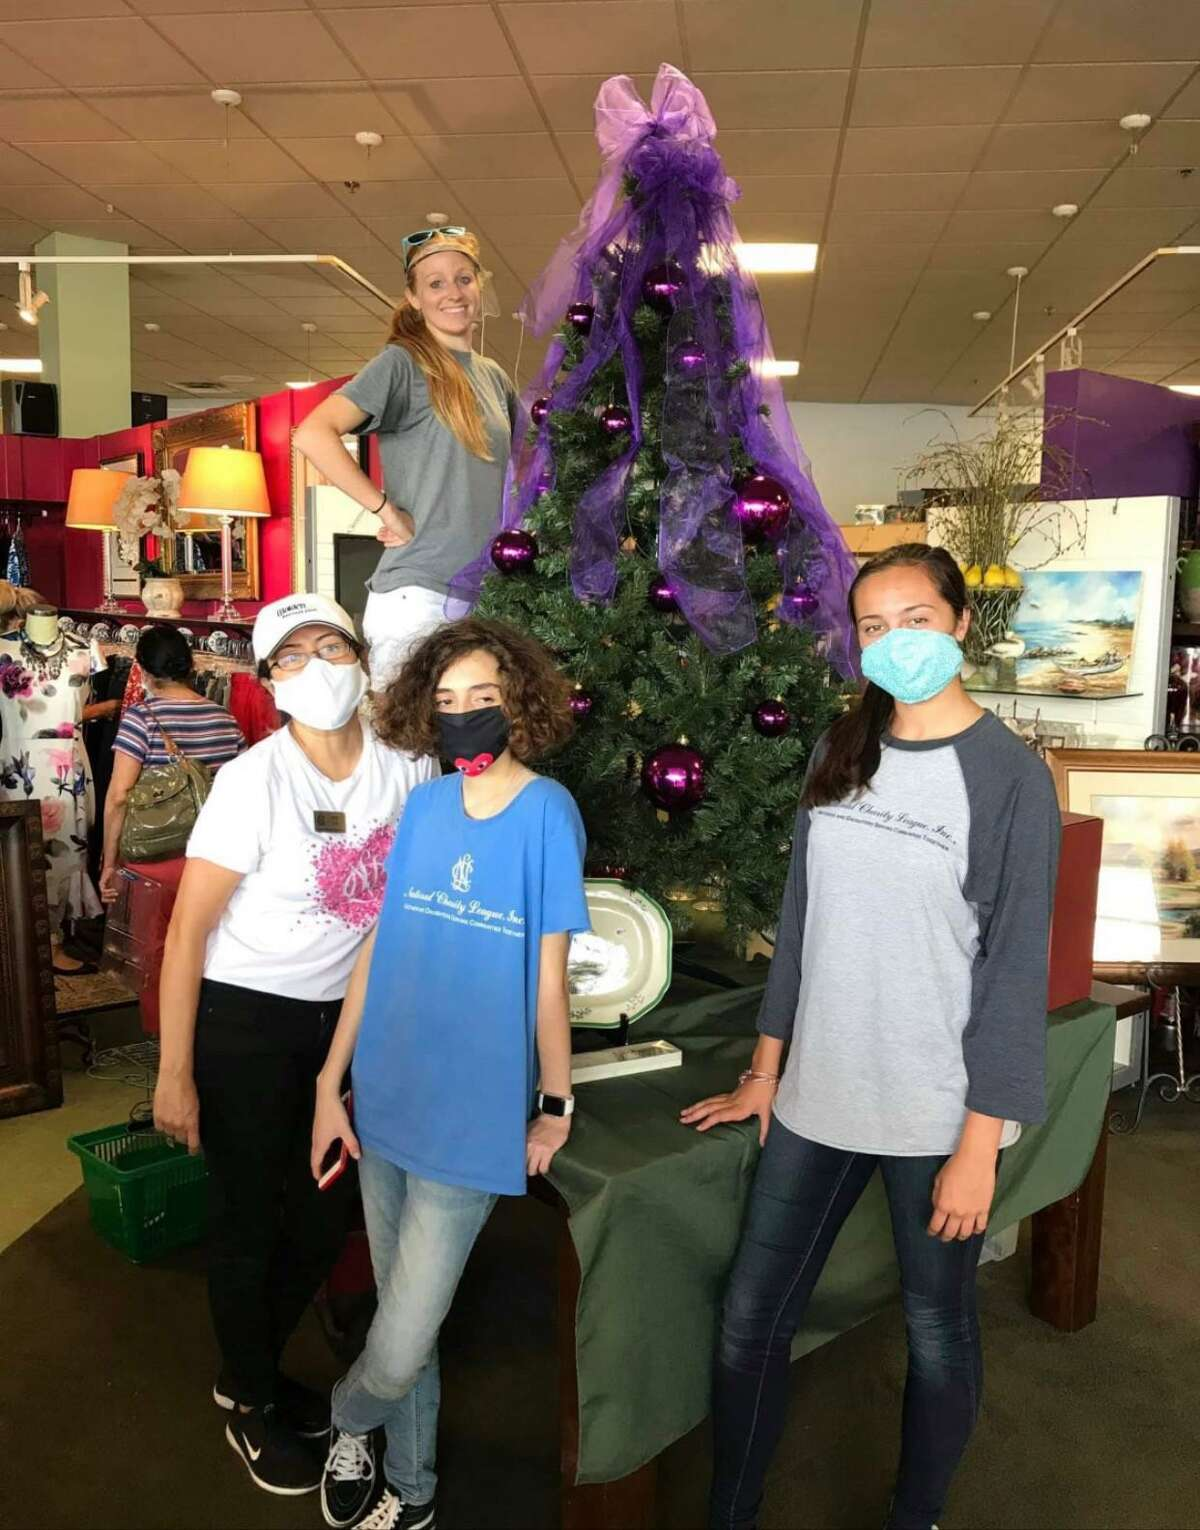 Current NCL Montgomery Monarchs president Annette Smith and several youth members of the organization pose for a photo at Something Special, the re-sale shop that helps provide the Montgomery County Women's Center with direct funding. During the pandemic last year the organization had to find creative ways to continue giving back to the community while still keeping members safe.